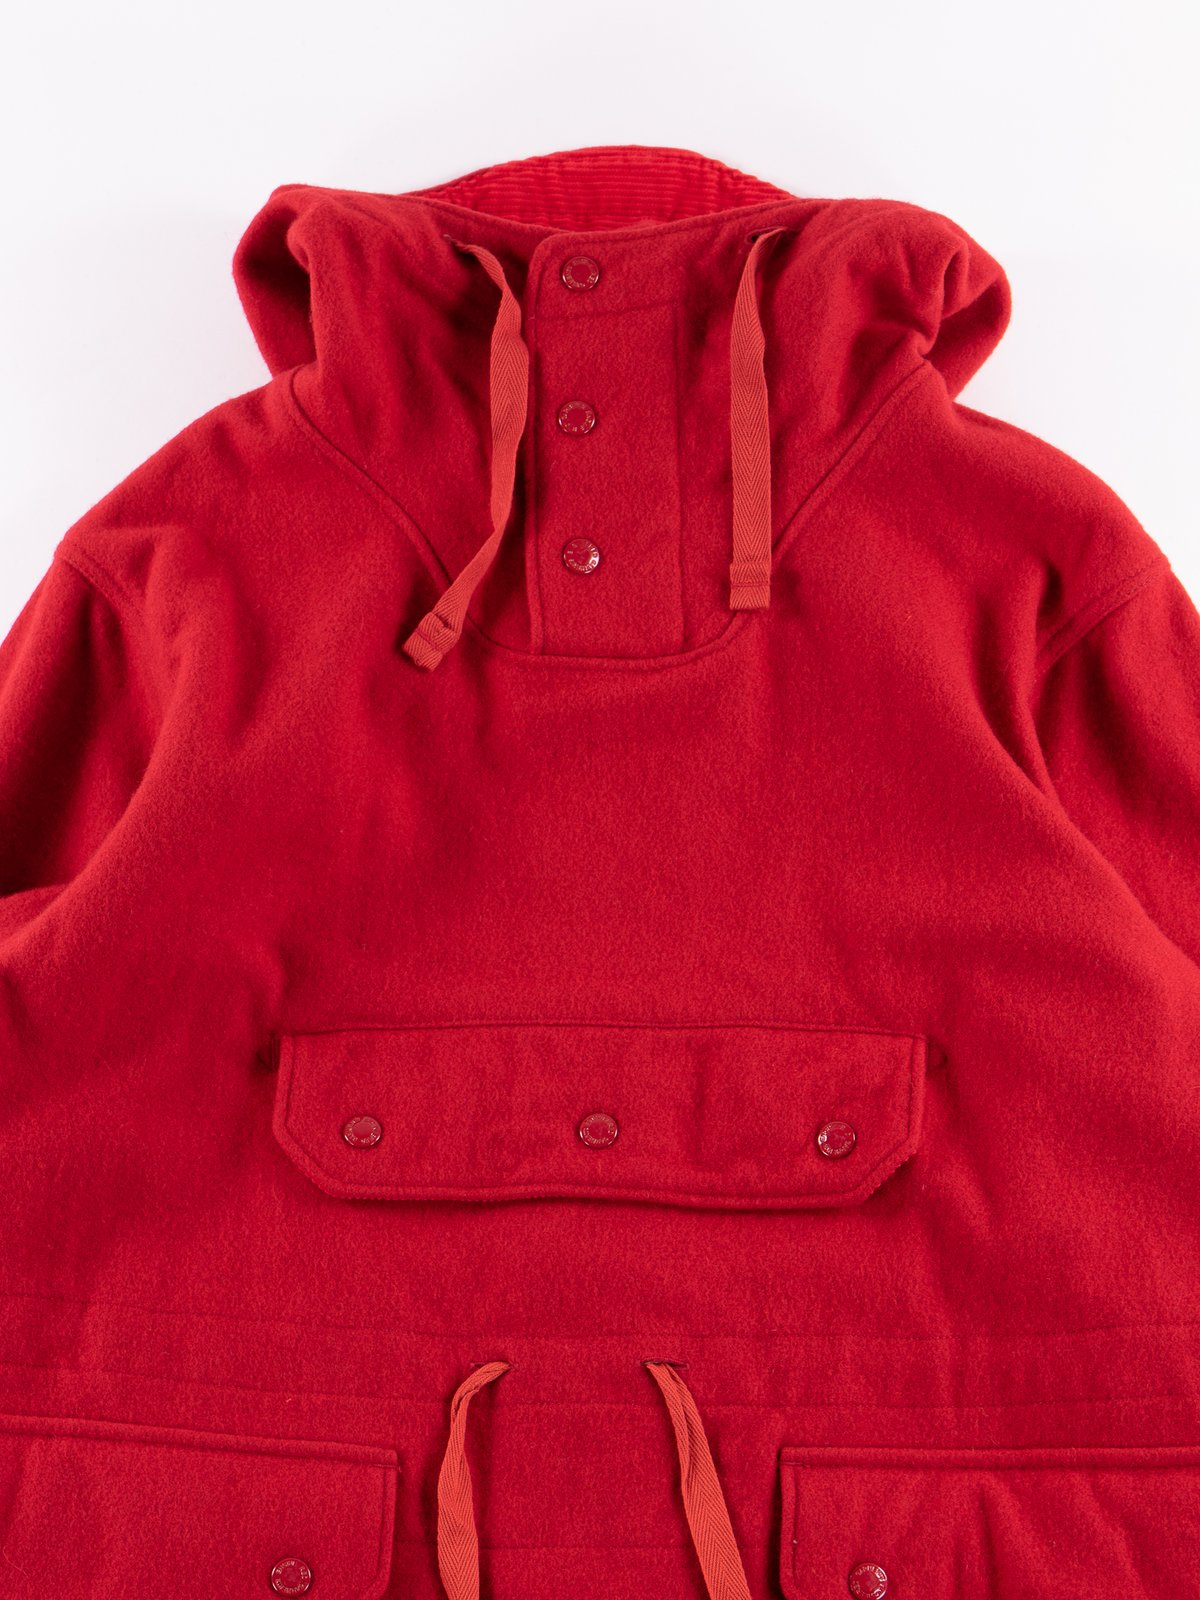 Red Wool Melton Over Parka - Image 3